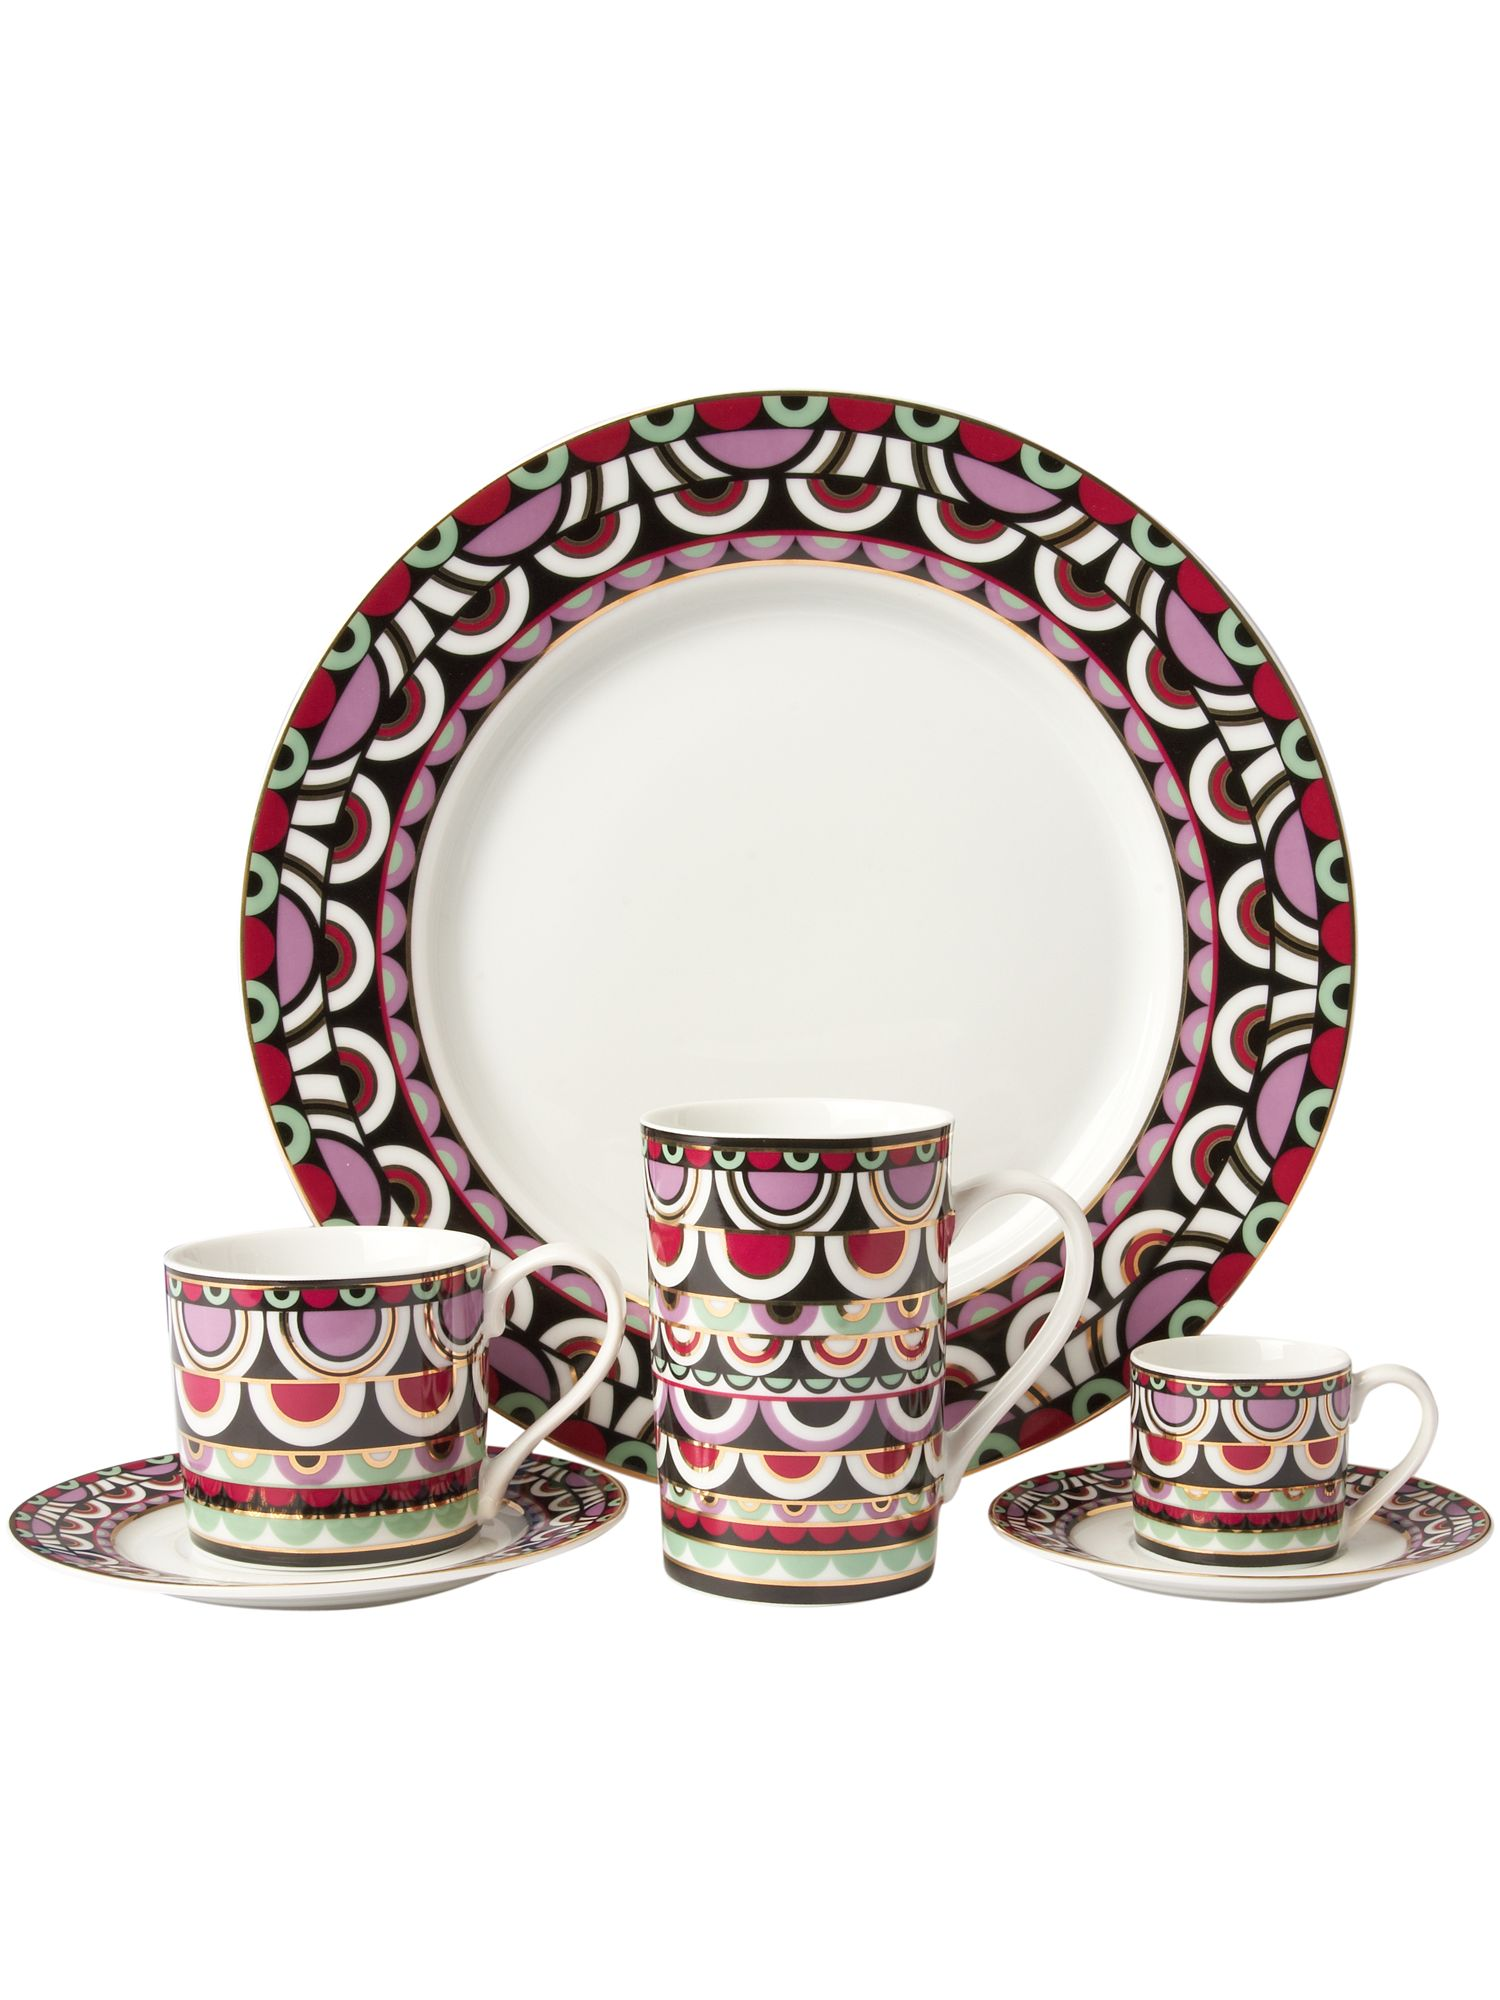 Persia Jewels dinnerware range